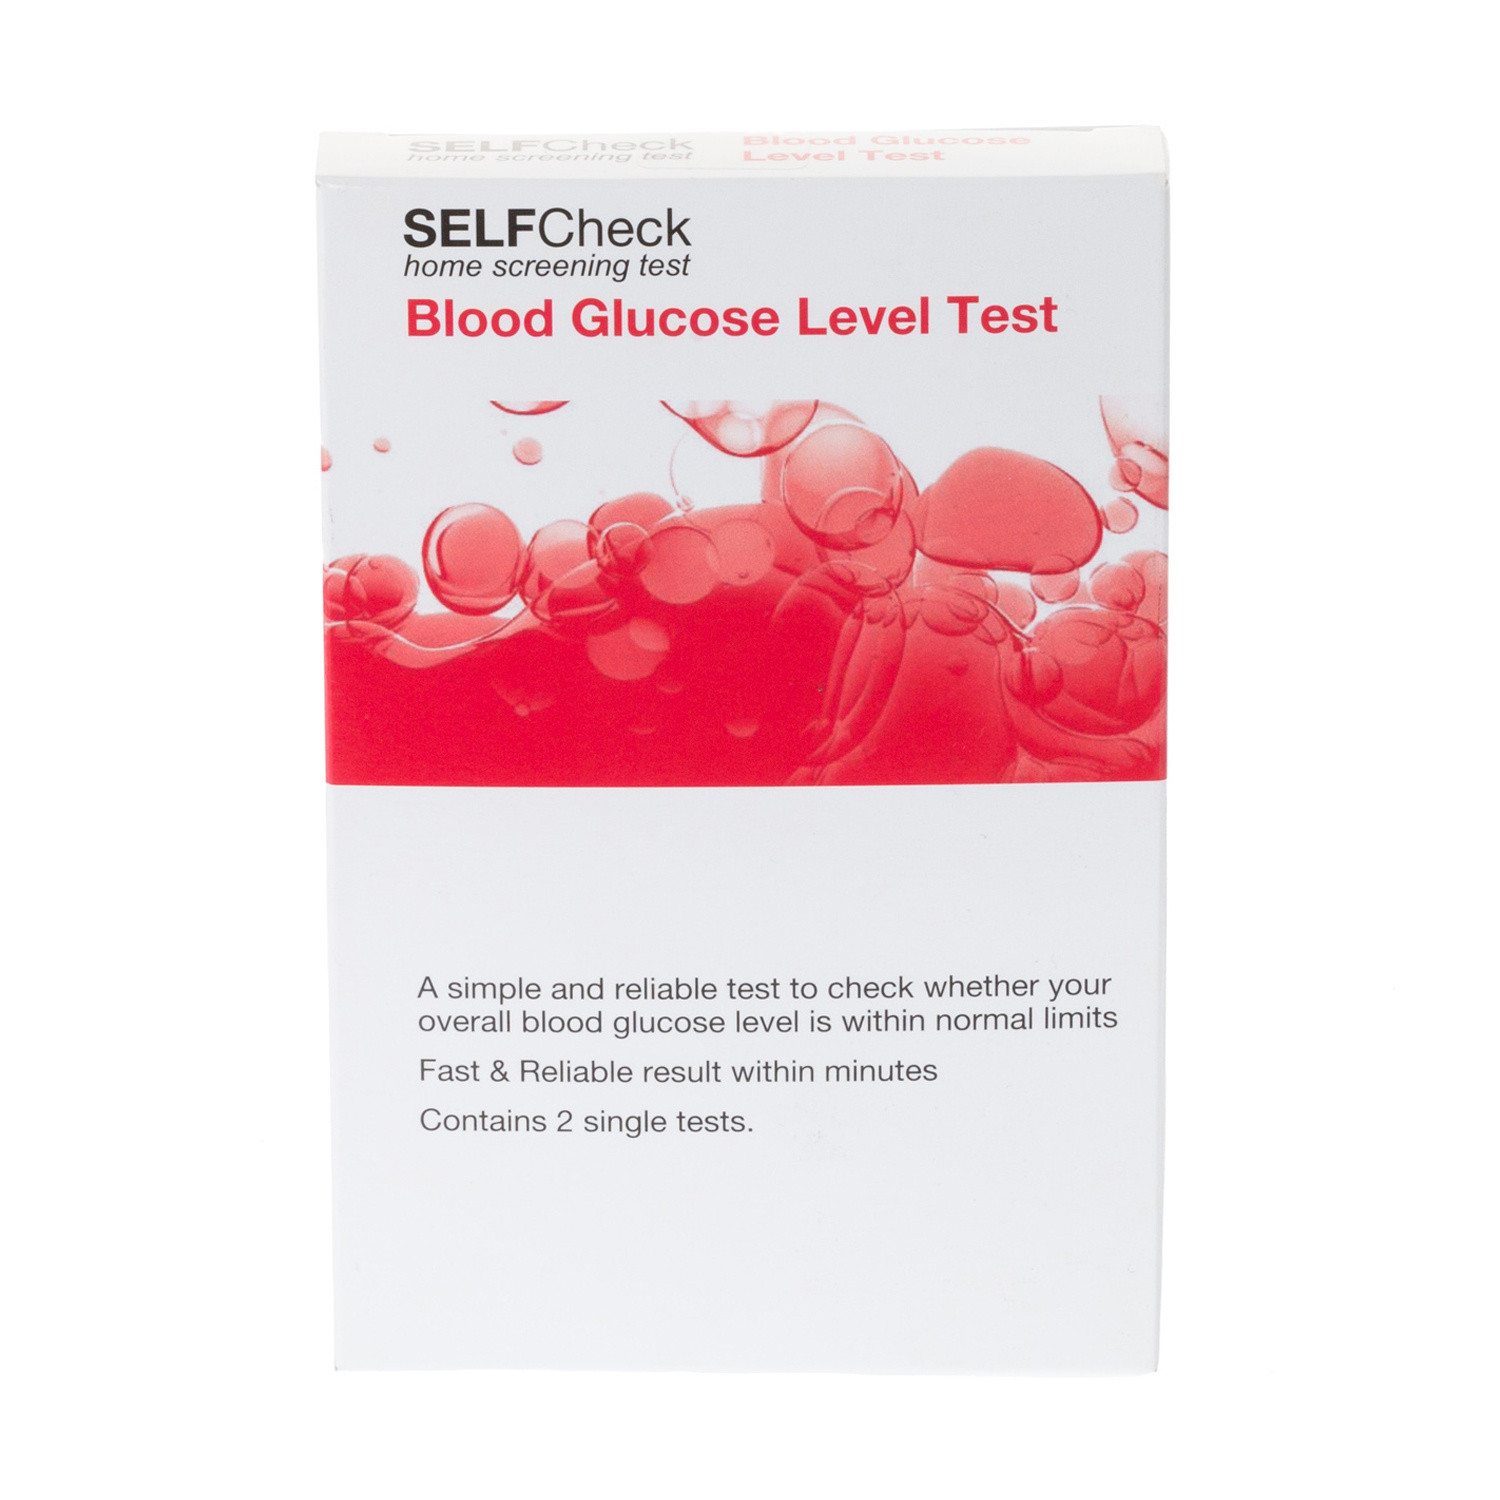 SELFcheck Blood Glucose Level Test